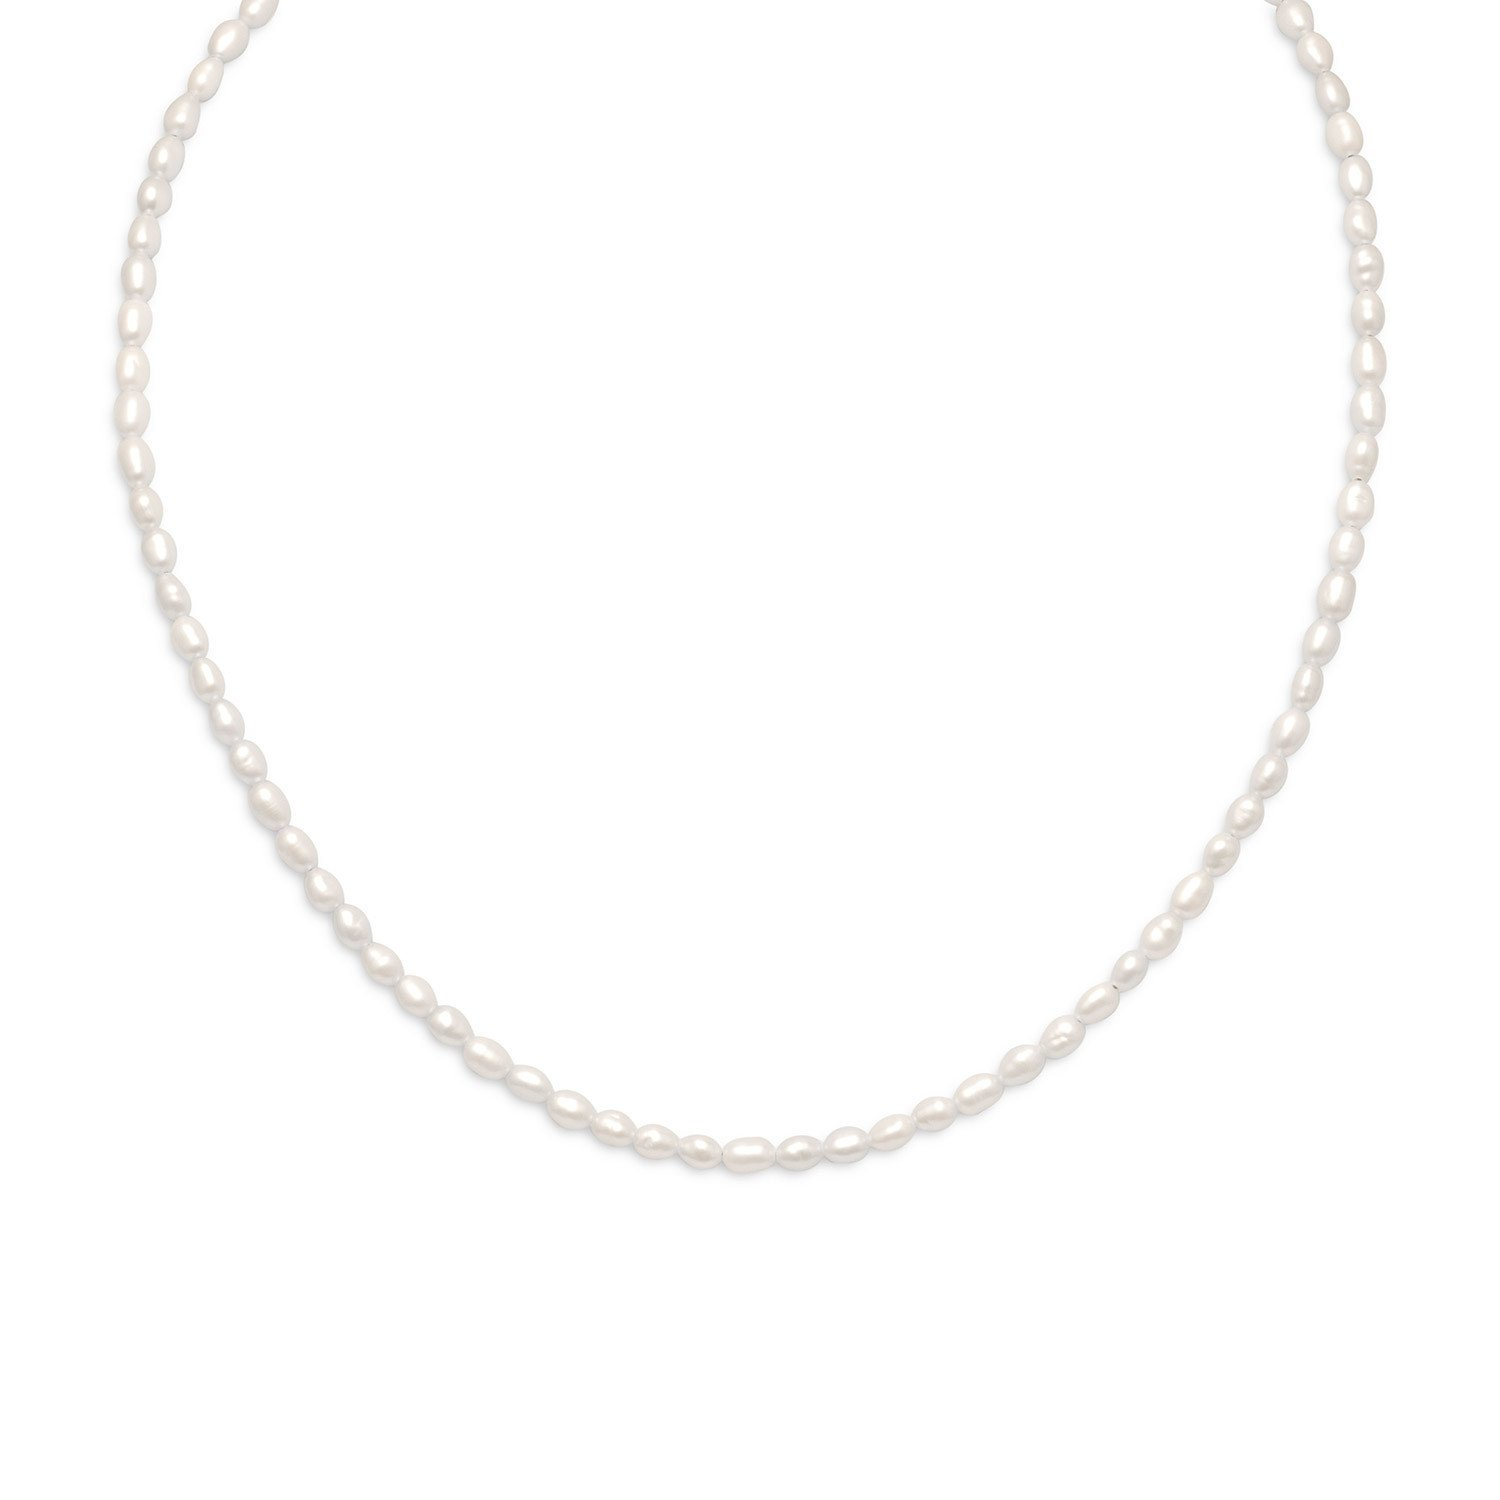 13″+2″ 14/20 Gold Filled Cultured Freshwater Rice Pearl Necklace